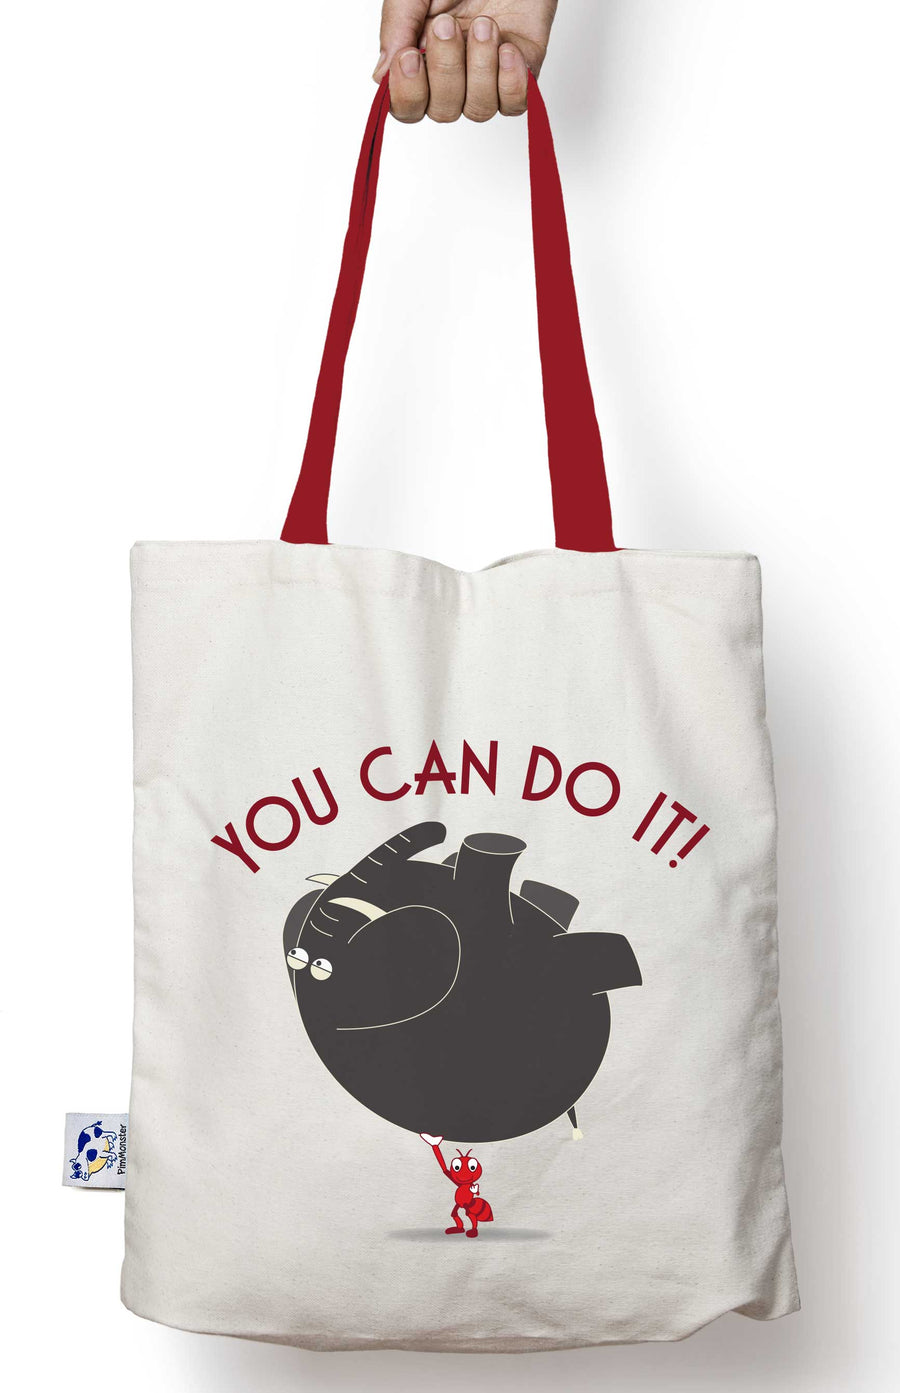 You Can Do It! tote bag - Pimmonster